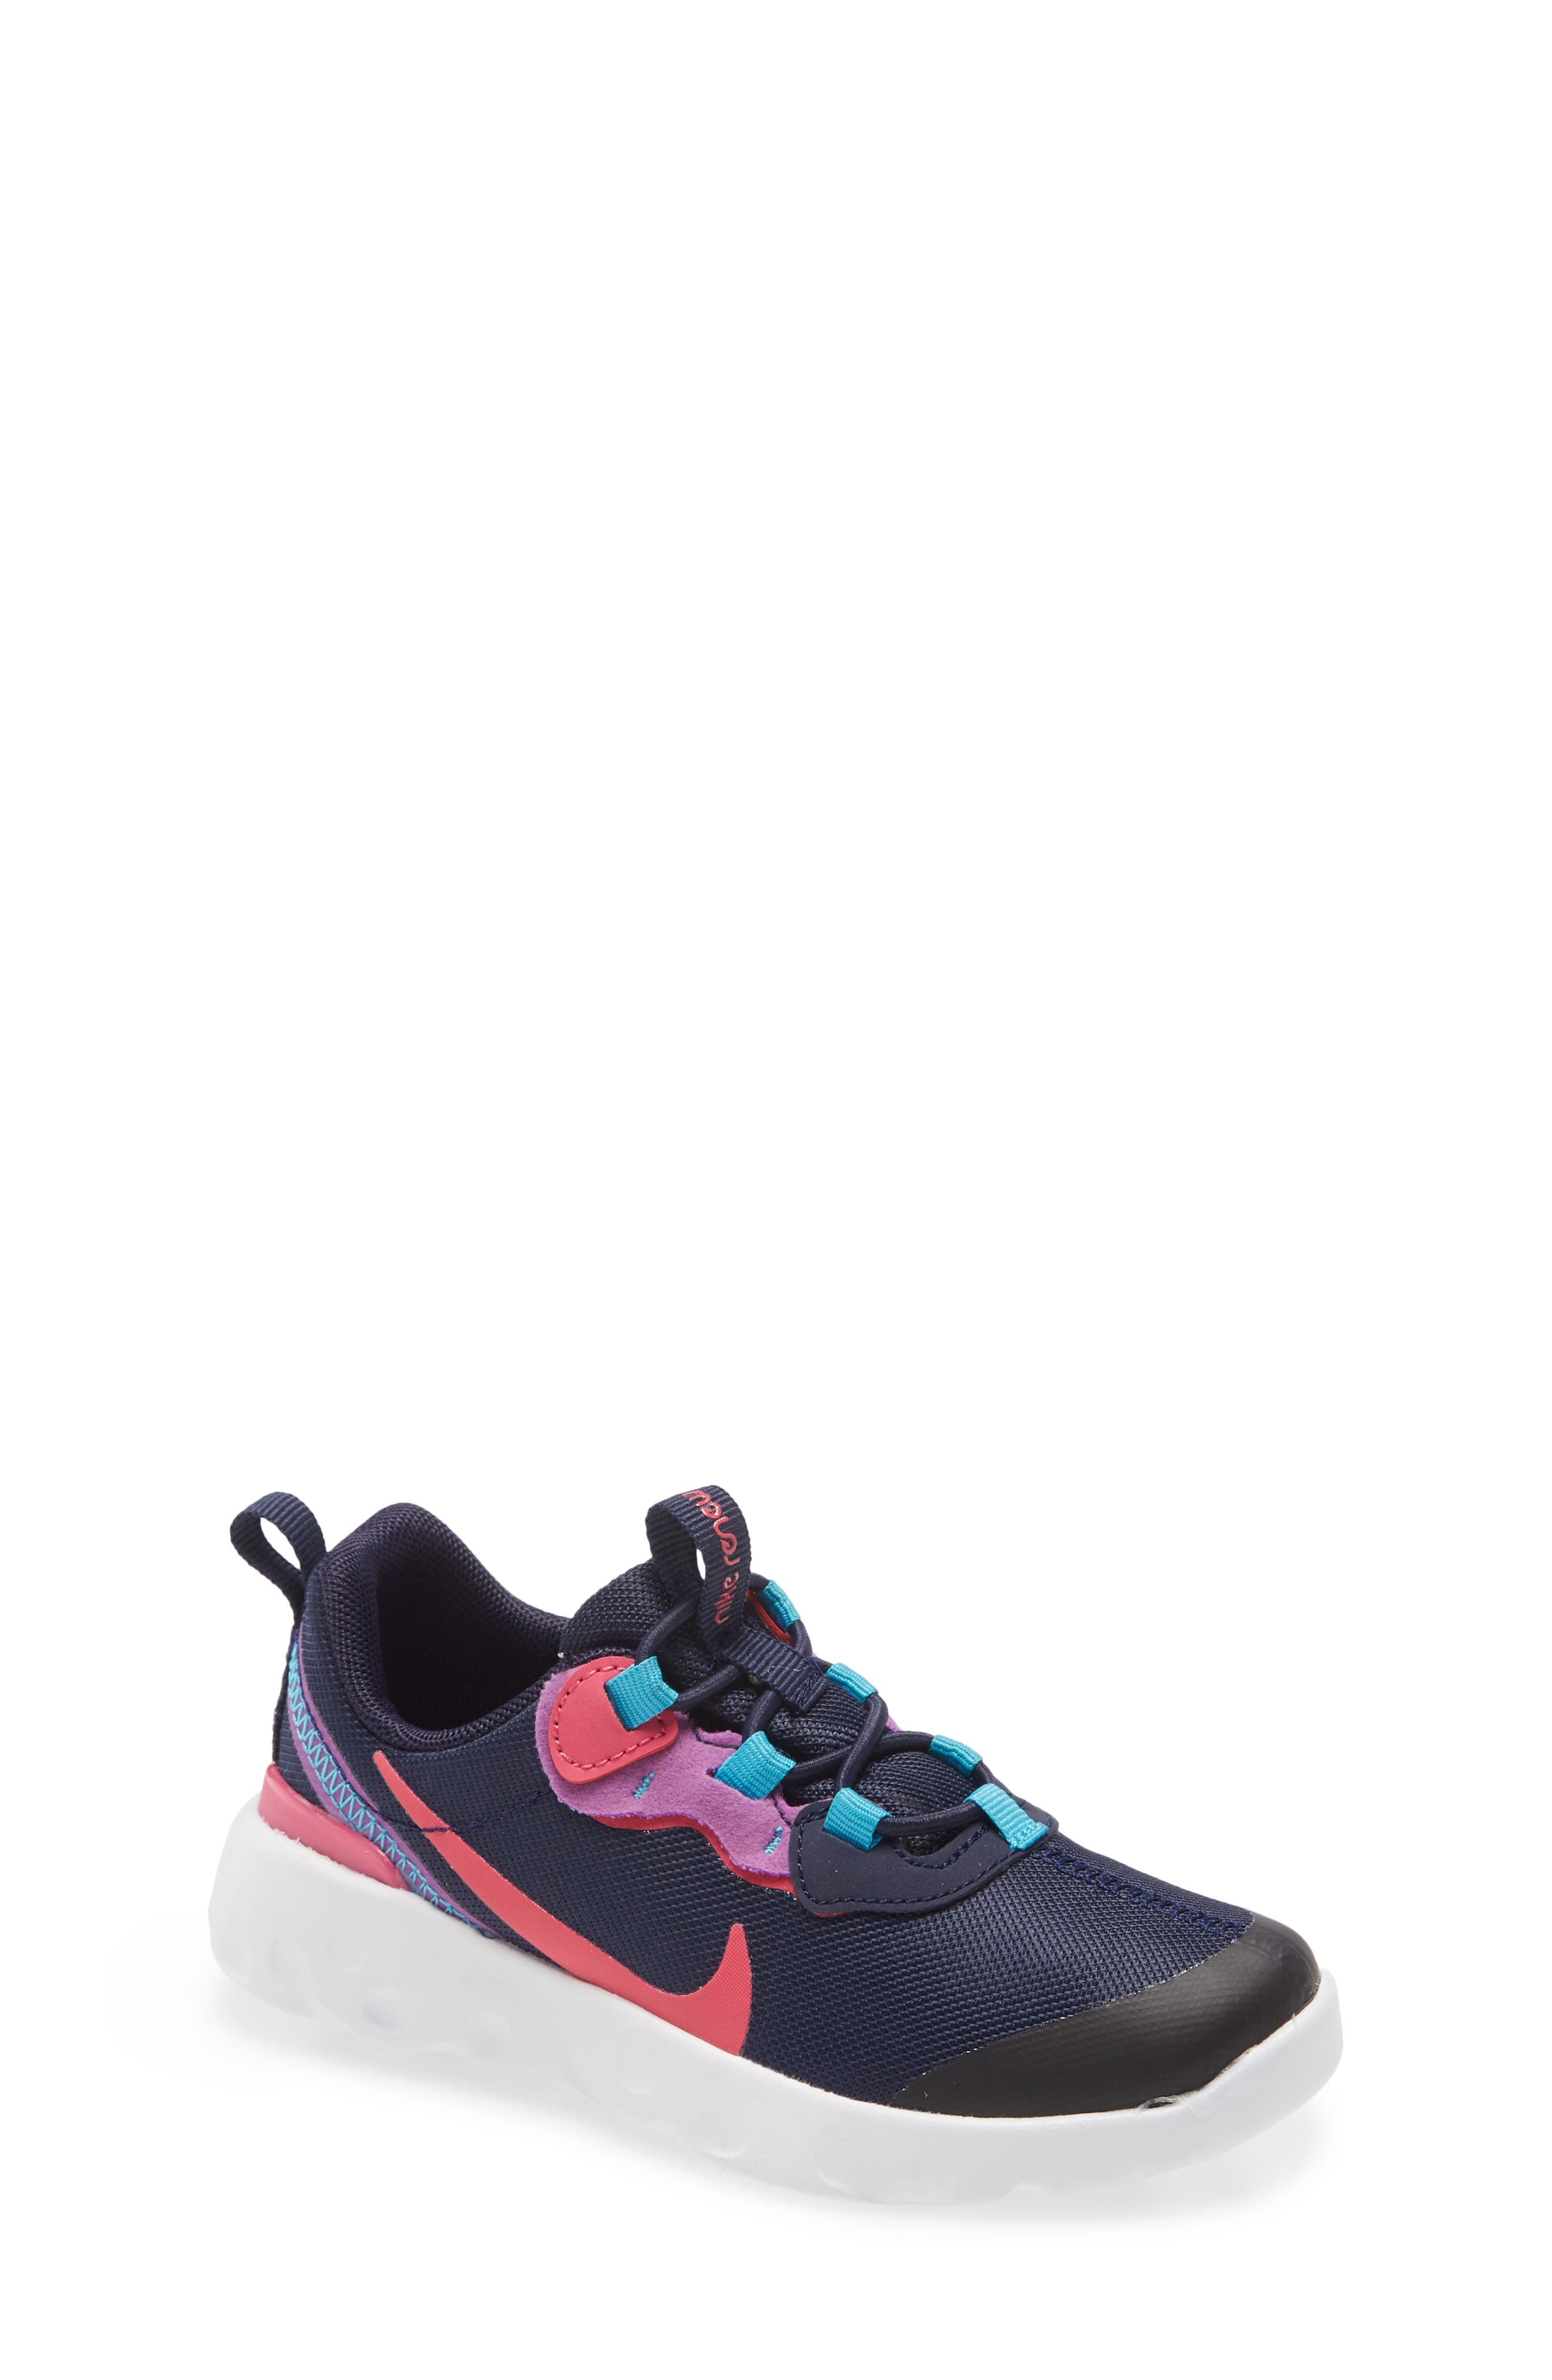 Kids' Boys' Shoes Clearance | Nordstrom